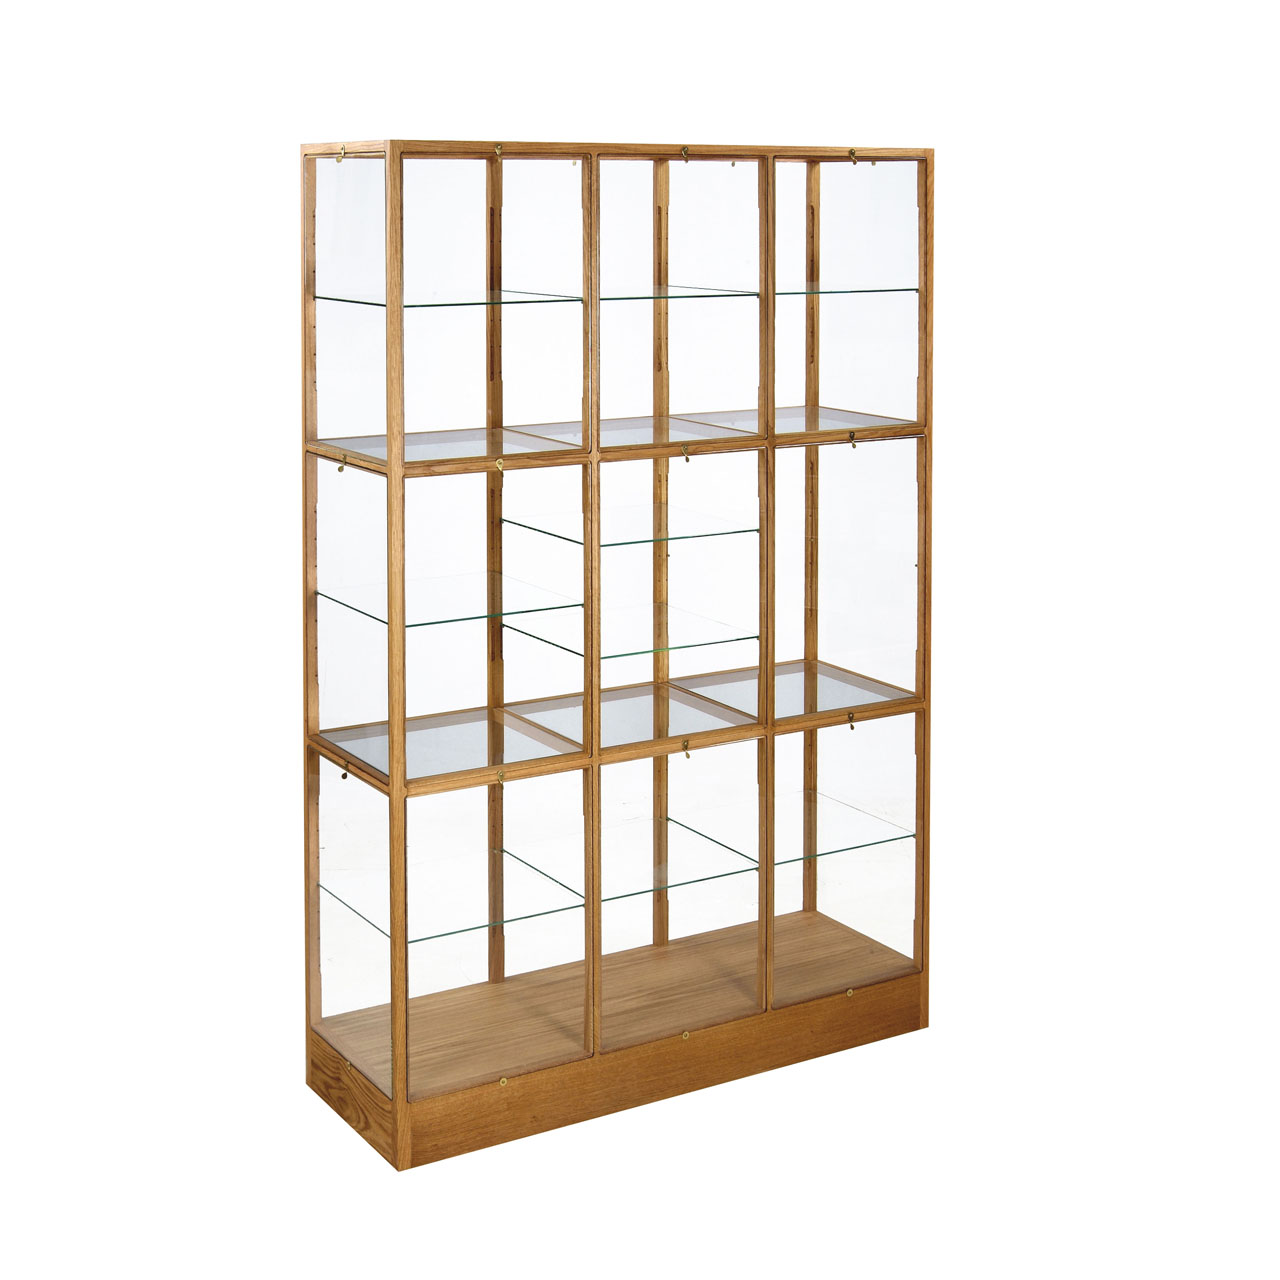 Oak Display Cabinet by Piet Hein Eek